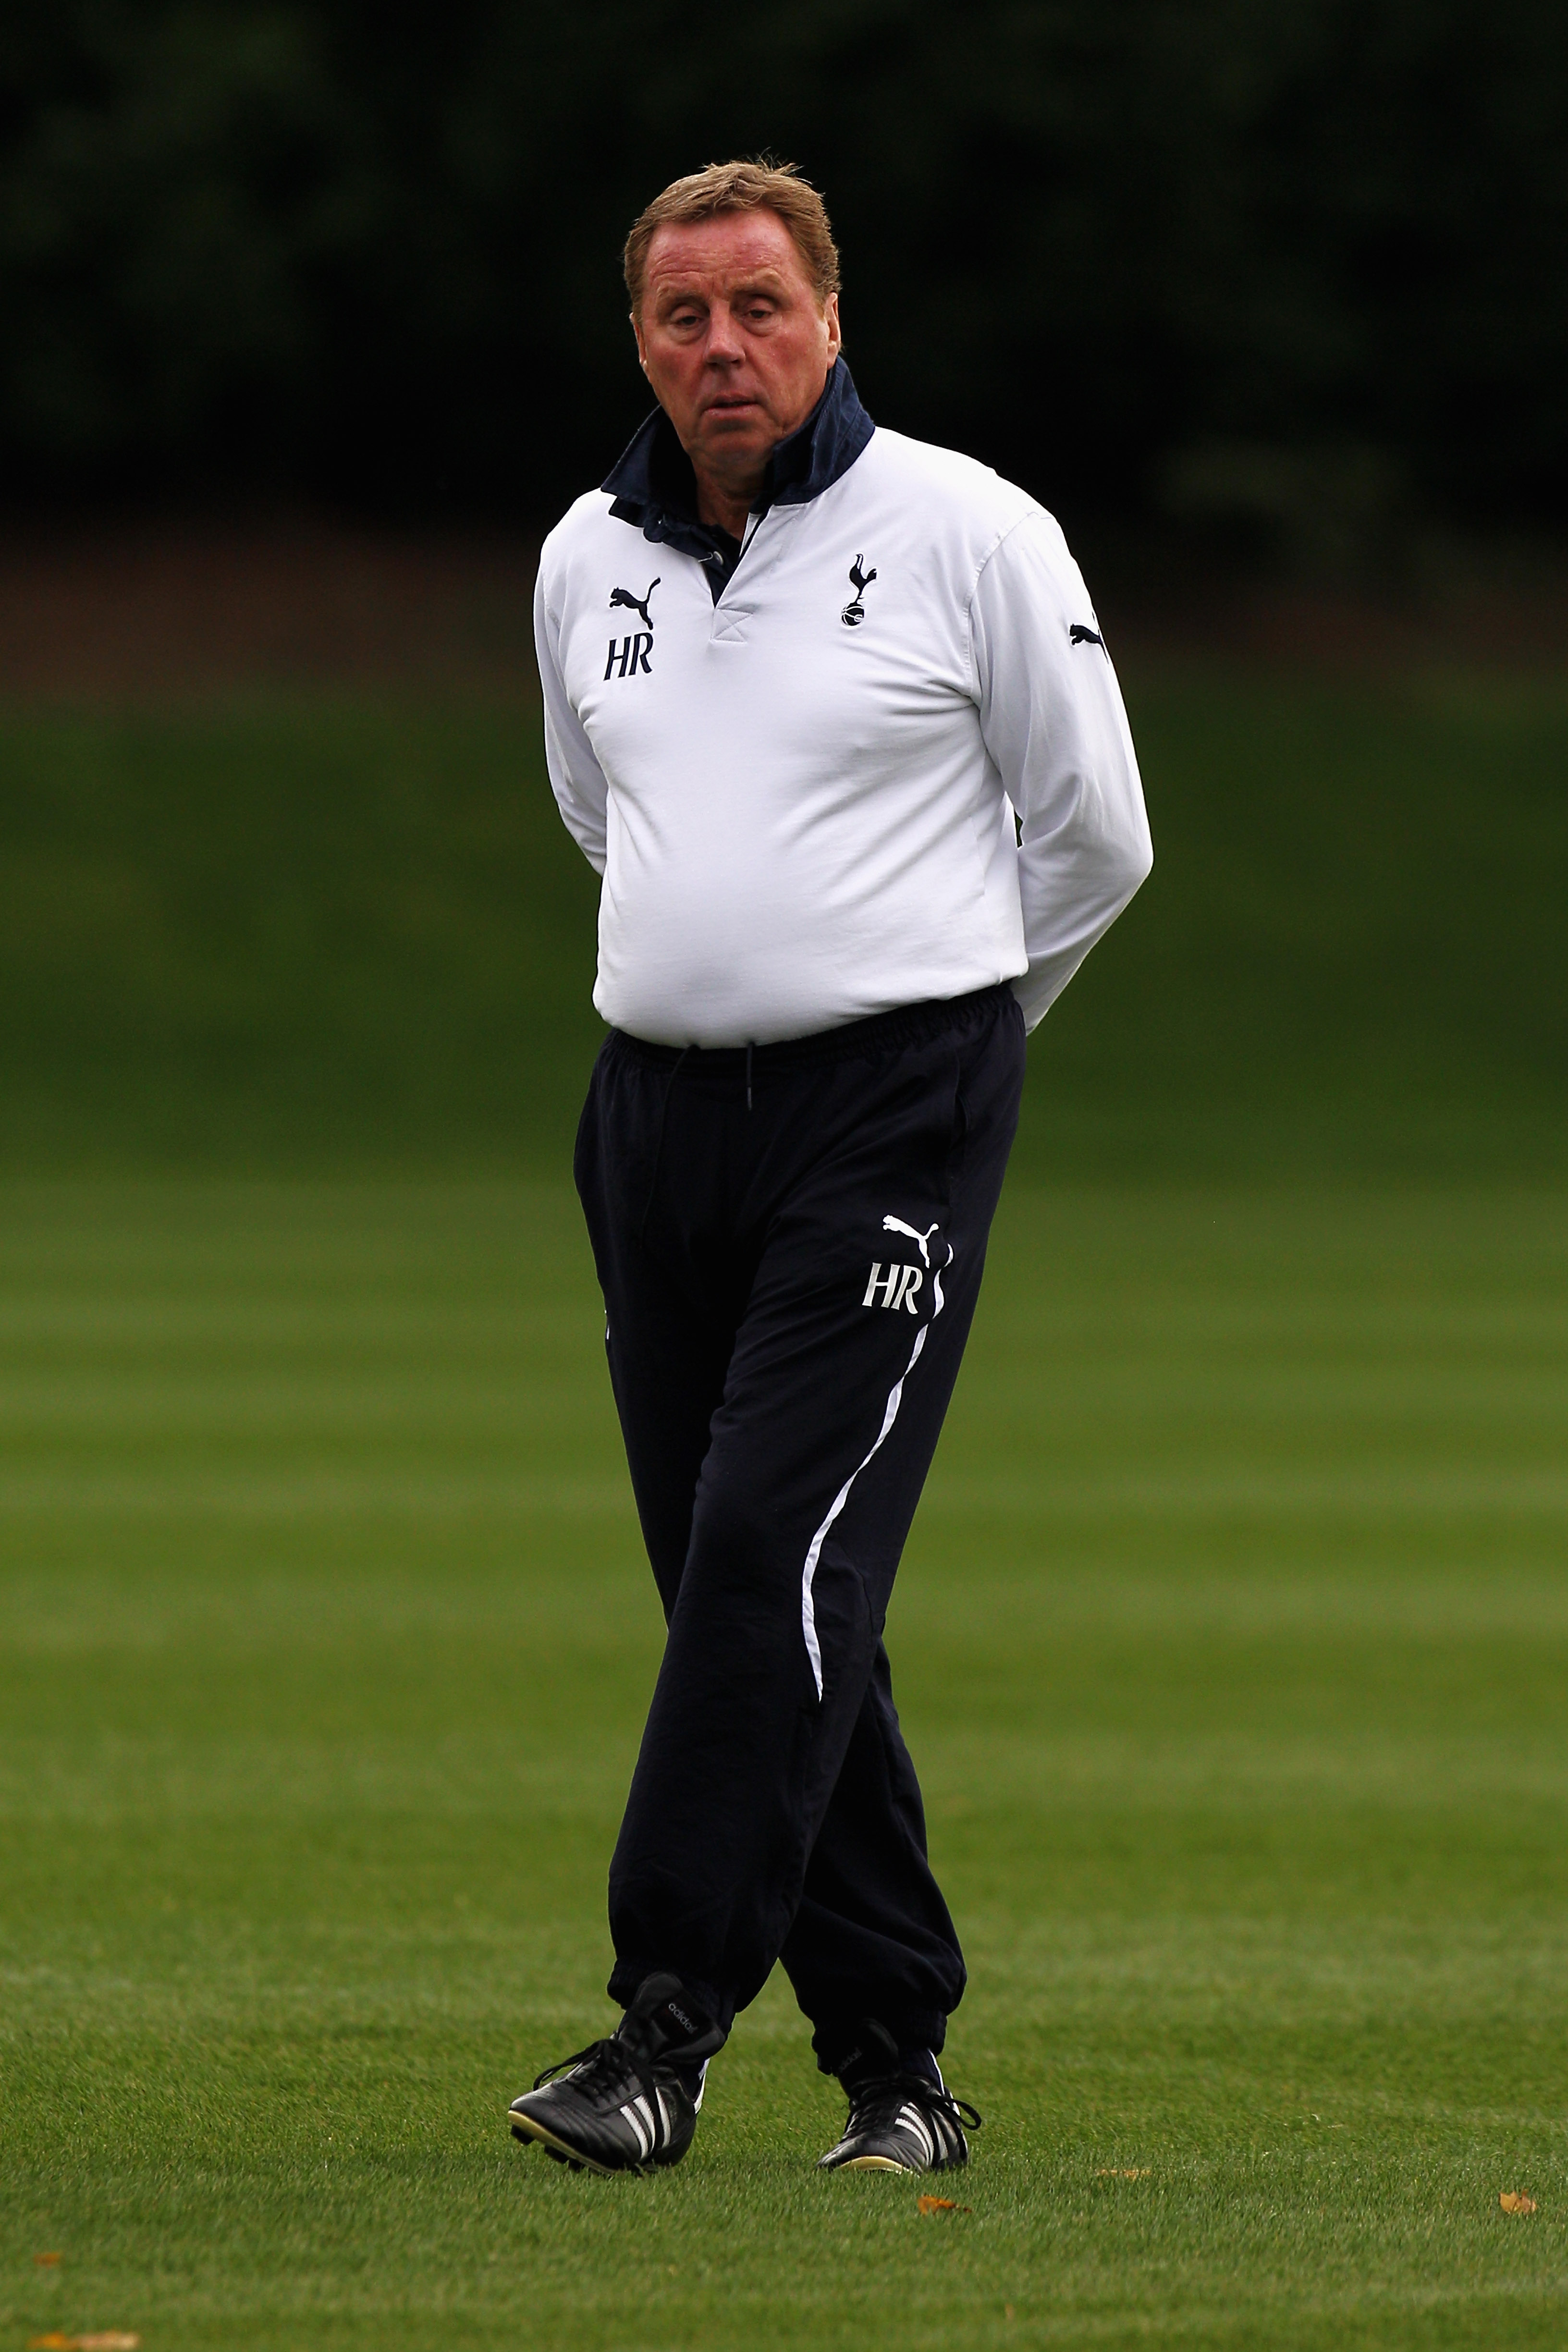 LONDON, ENGLAND - NOVEMBER 01:  Tottenham Manager,  Harry Redknapp looks on during the Tottenham Hotspur training session ahead of their UEFA Champions League group stage match against Inter Milan at Tottenham Hotspur Training Ground on November 1, 2010 i